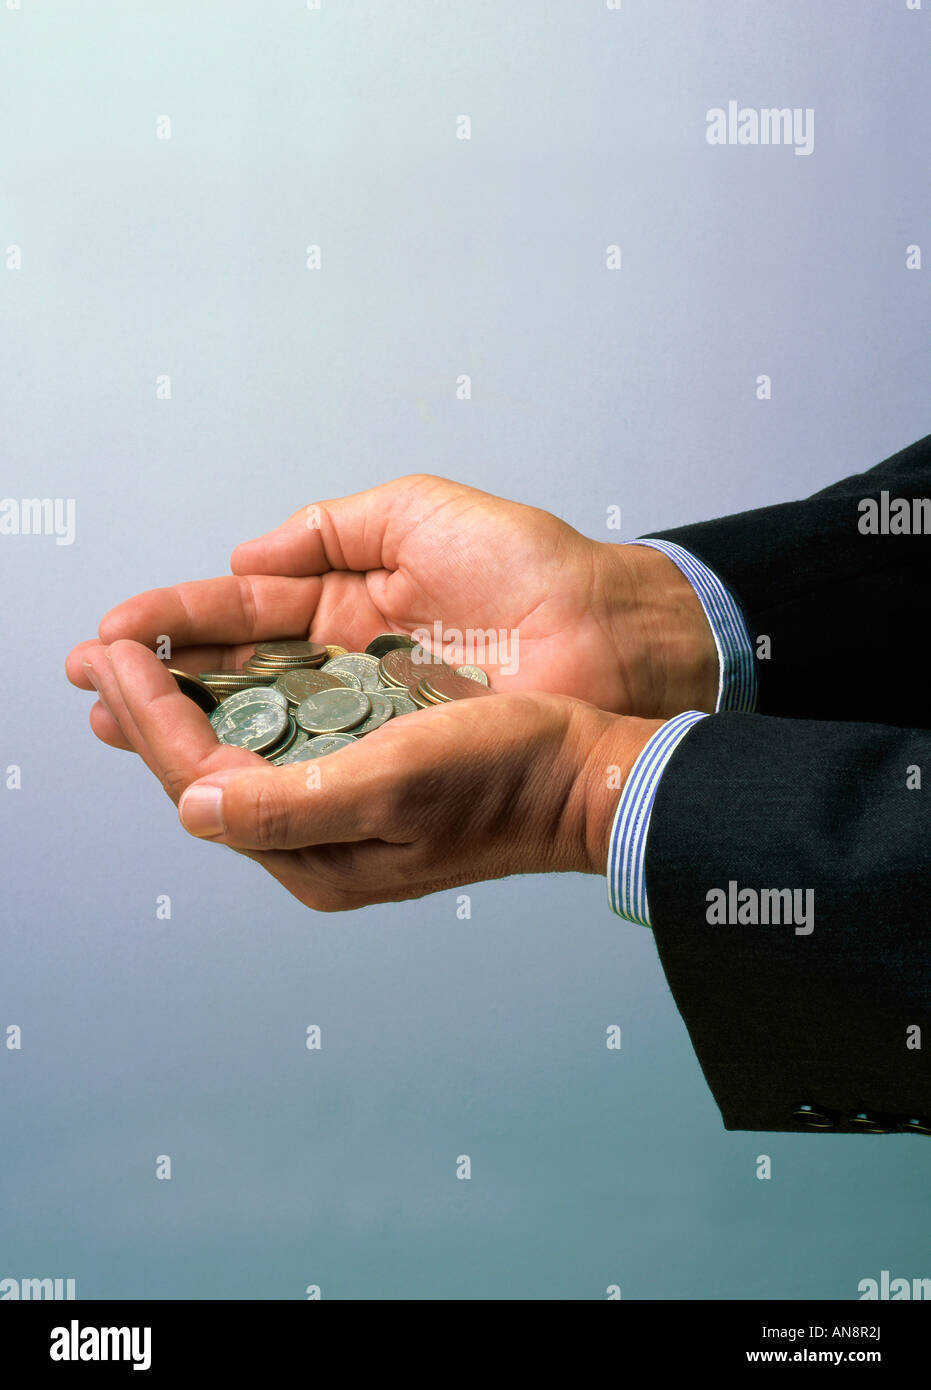 Hands holding Dollars - Stock Image